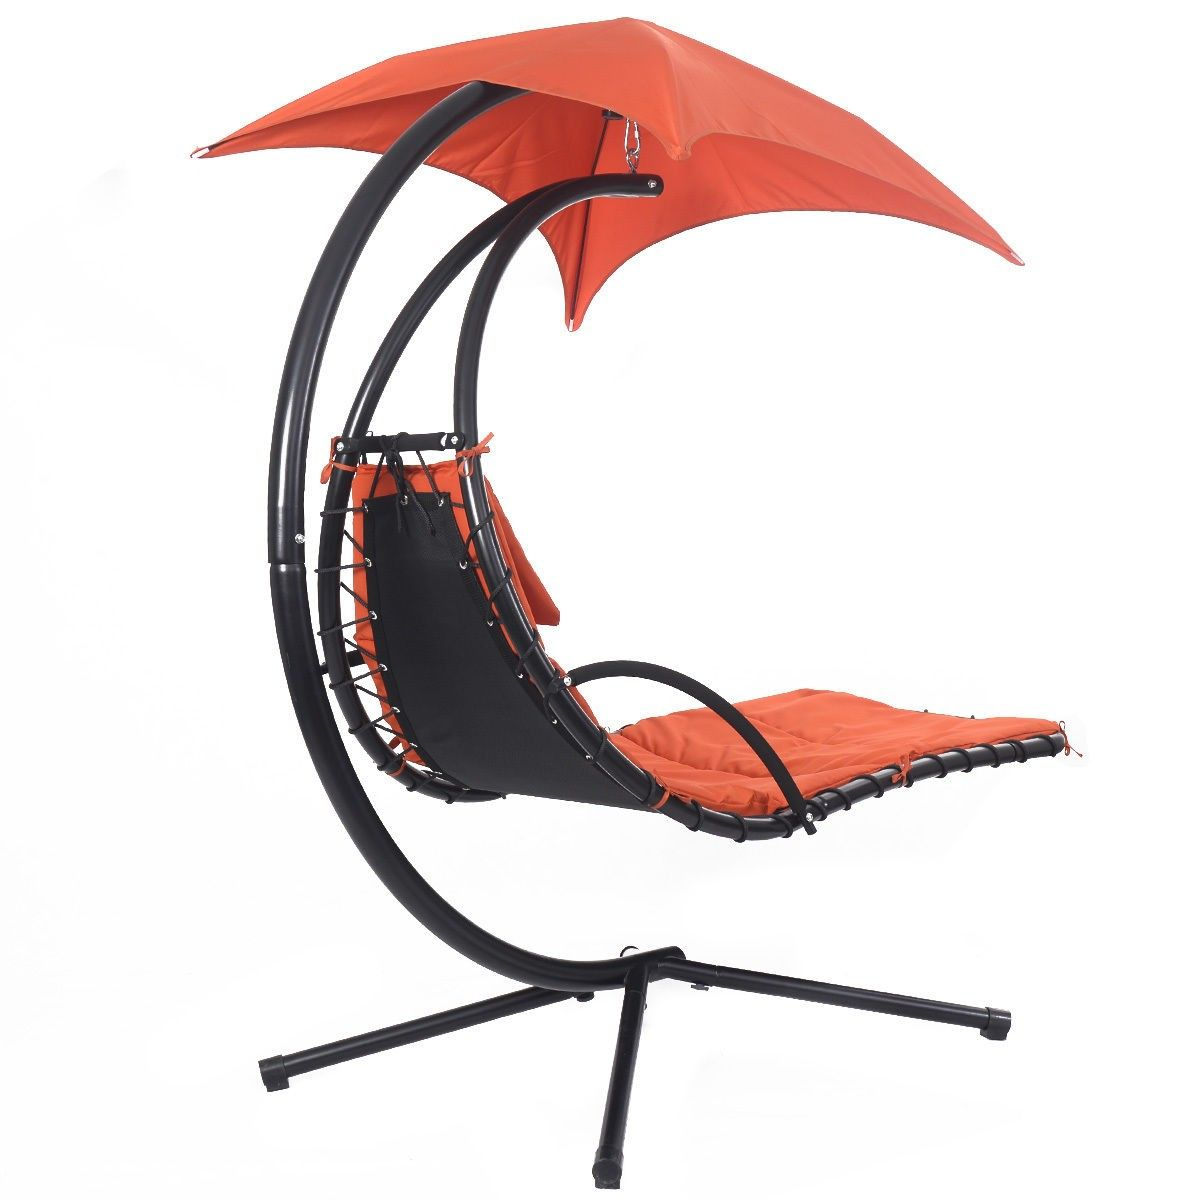 Hanging Chaise Lounge Chair Arc Stand Air Porch Swing Hammock Canopy Orange - Lawn u0026 Garden  sc 1 st  Pinterest : dream chair swinging chaise lounge - Sectionals, Sofas & Couches